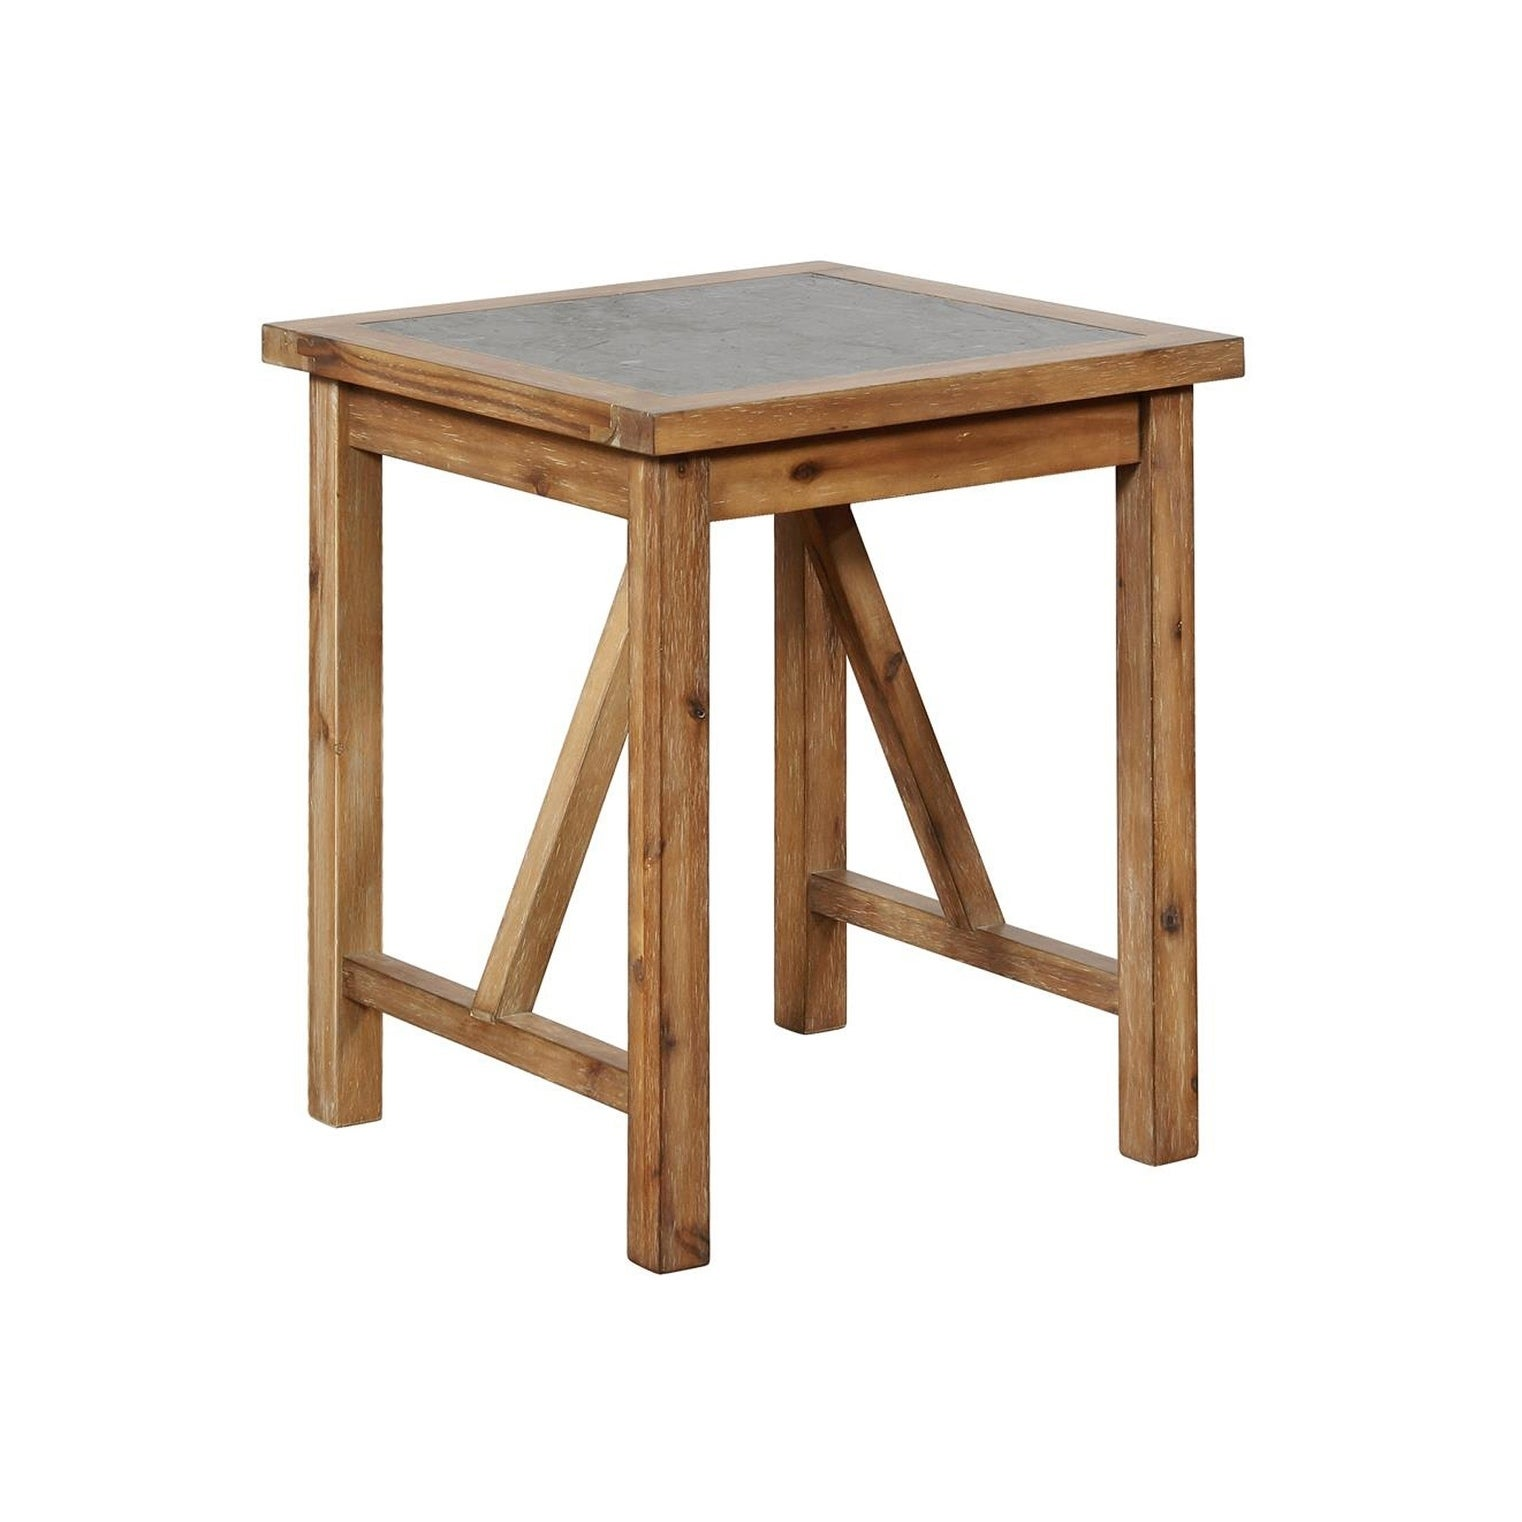 Wood and Metal End Table with Block Legs, Brown and Gray